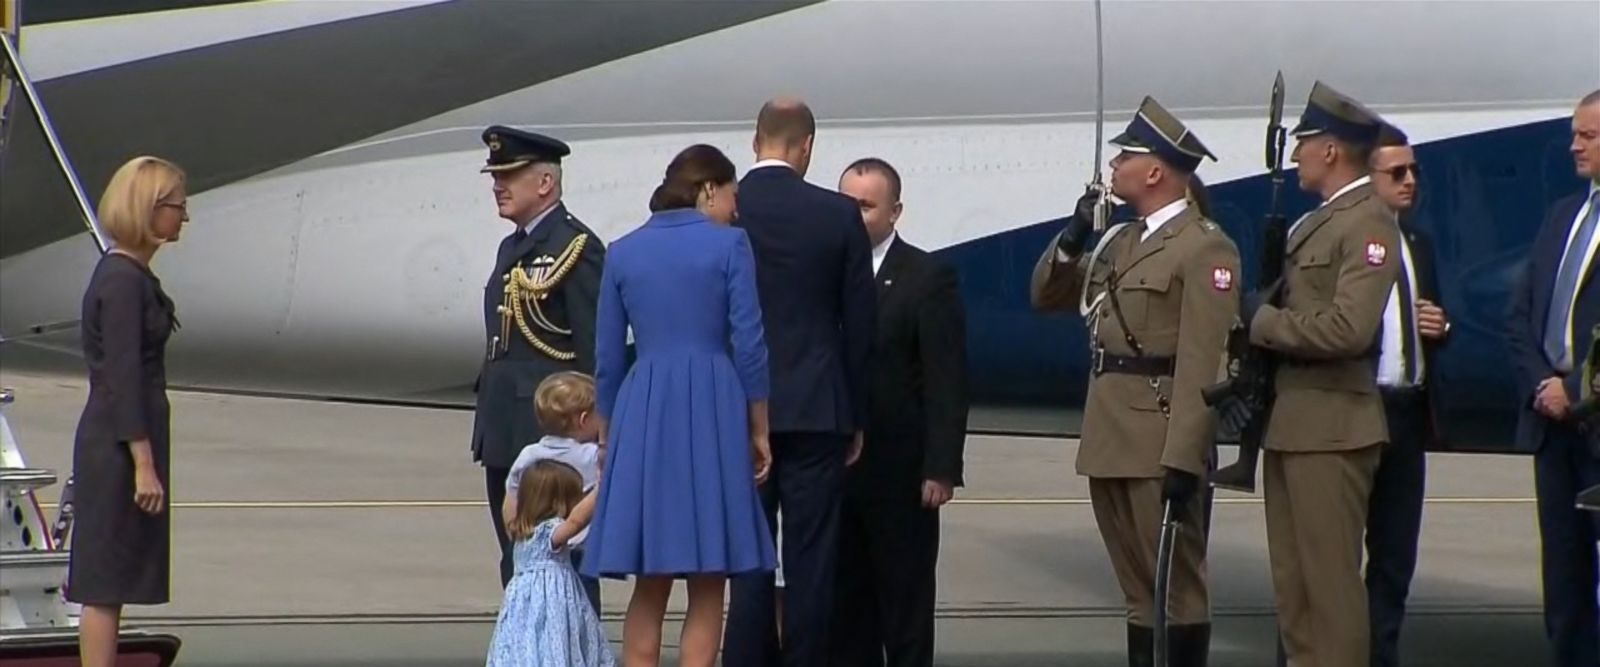 Charlotte, 2, was by the side of her mom, Princess Kate, when she ducked into a curtsy as the royal family departed Poland.